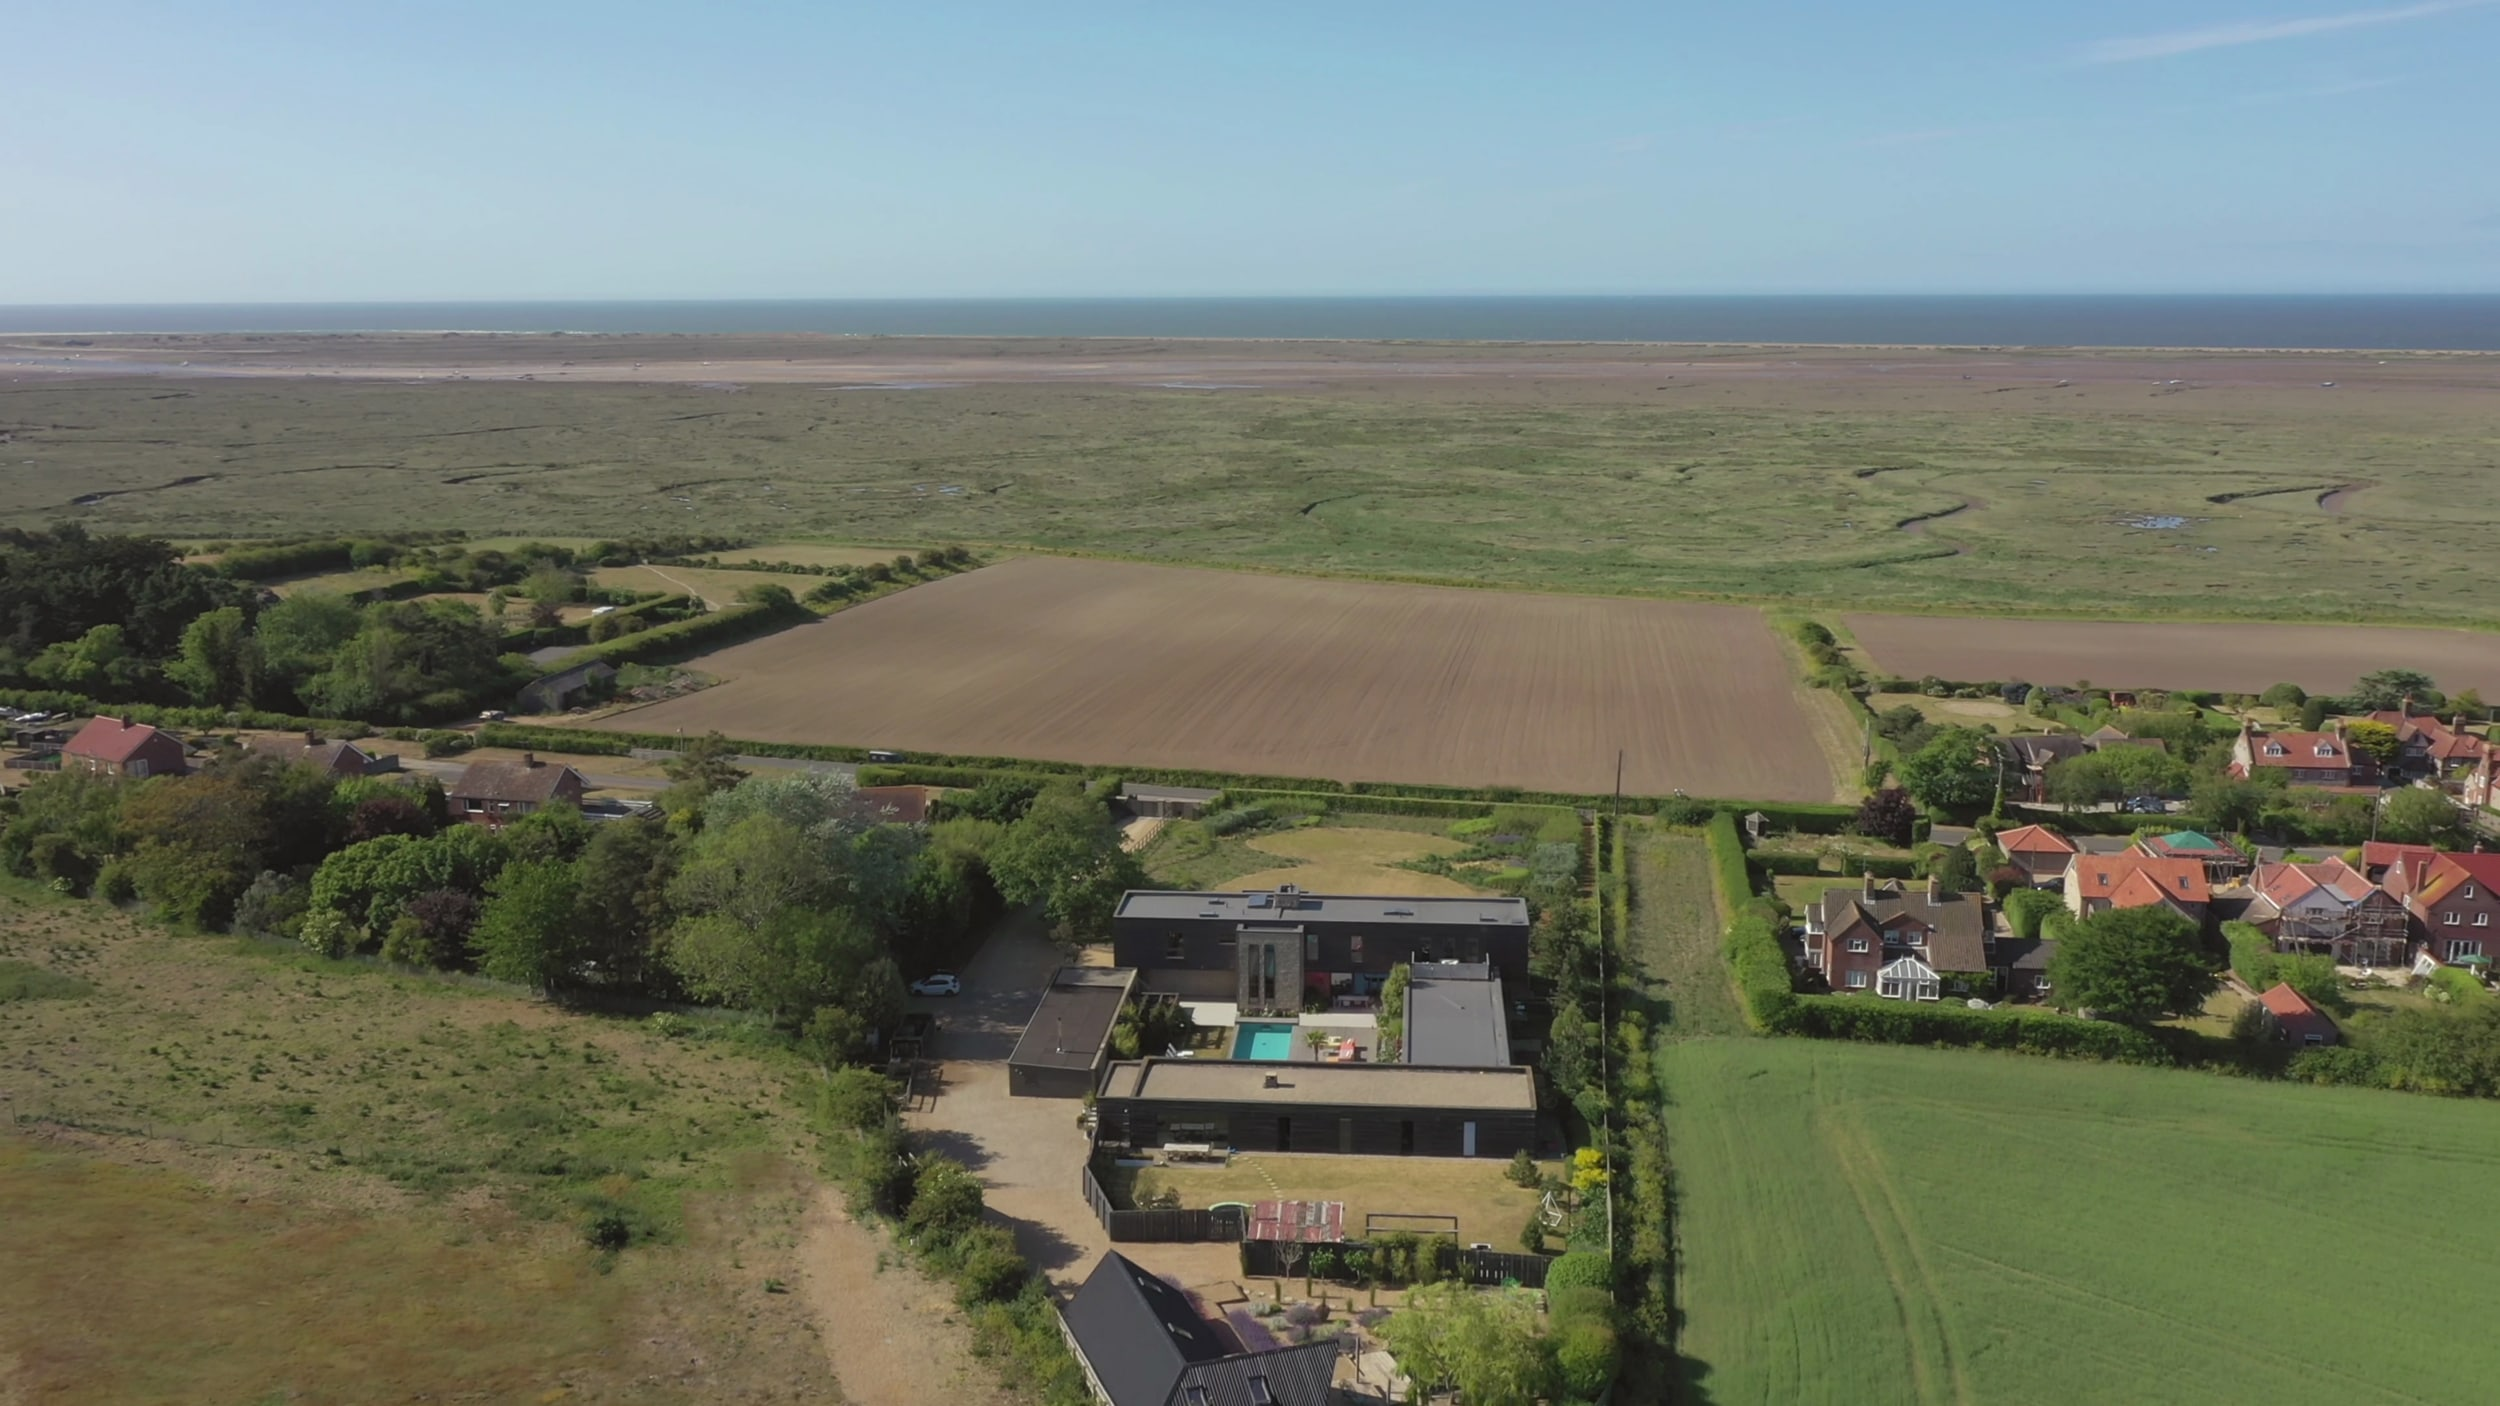 The unspoiled views out over the salt marshes to the sea